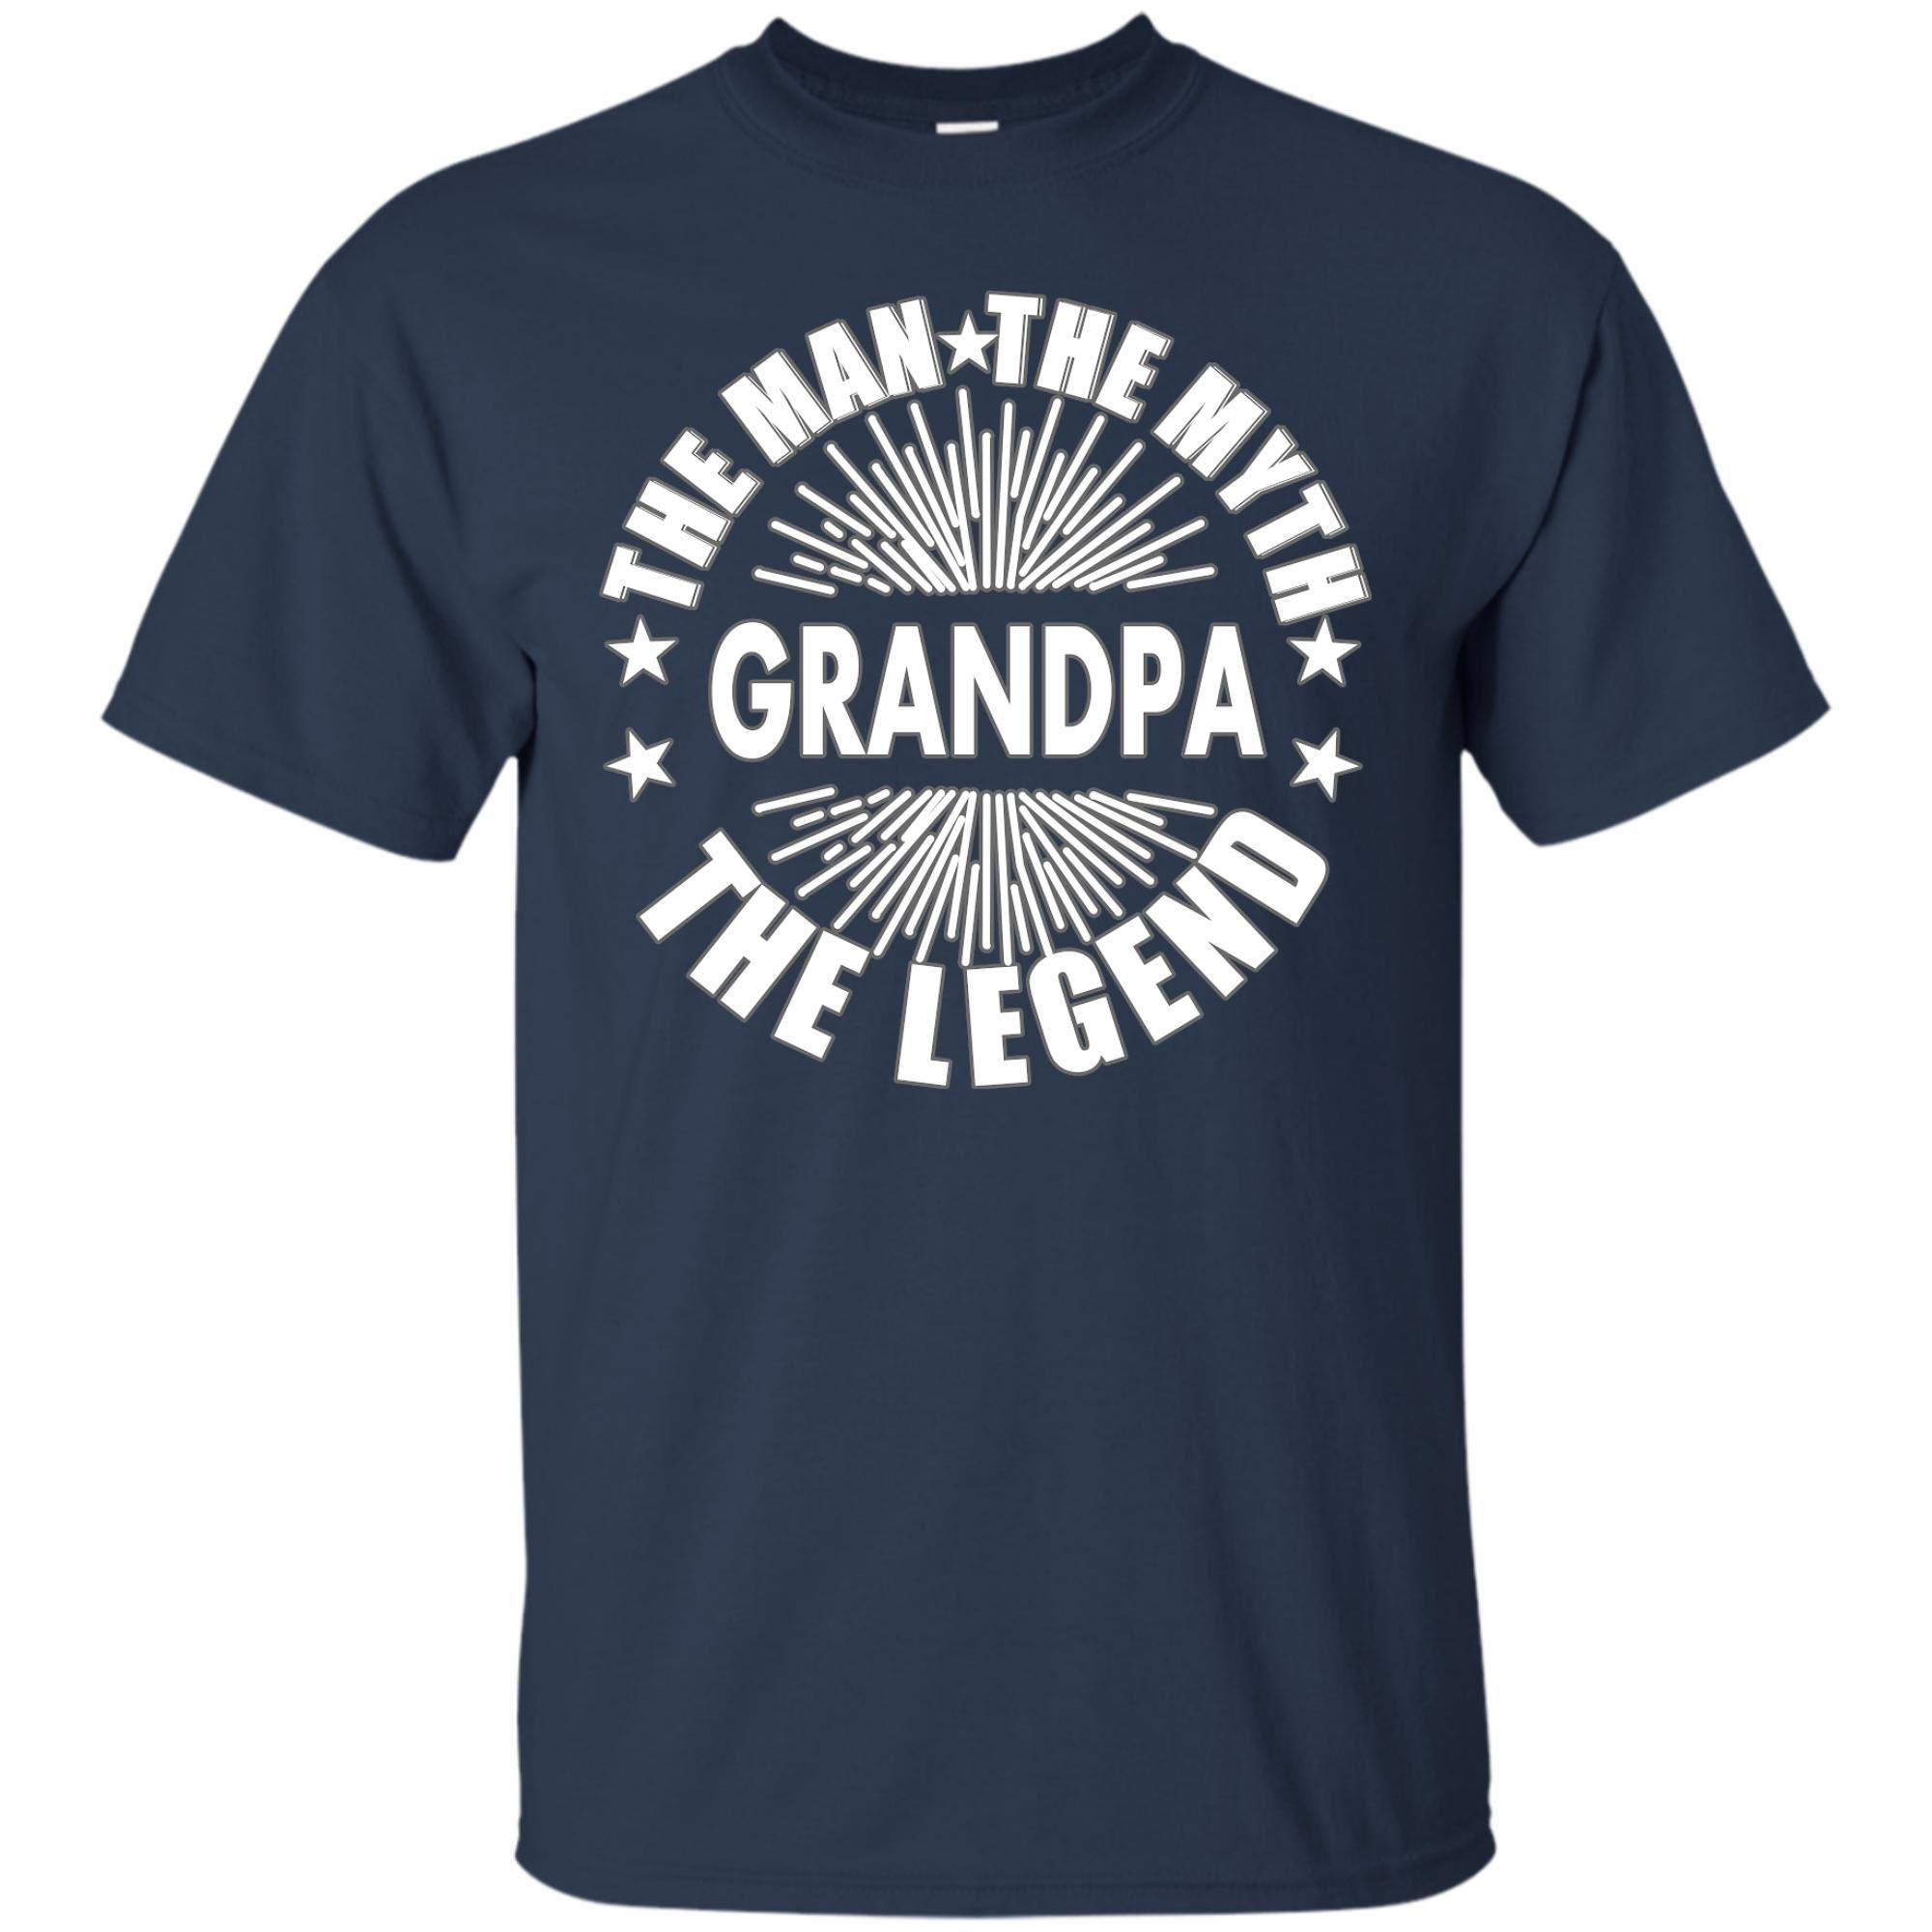 Grandpa The Man The Myth The Legend T Shirt Best Gift For Grandpa Father 7949